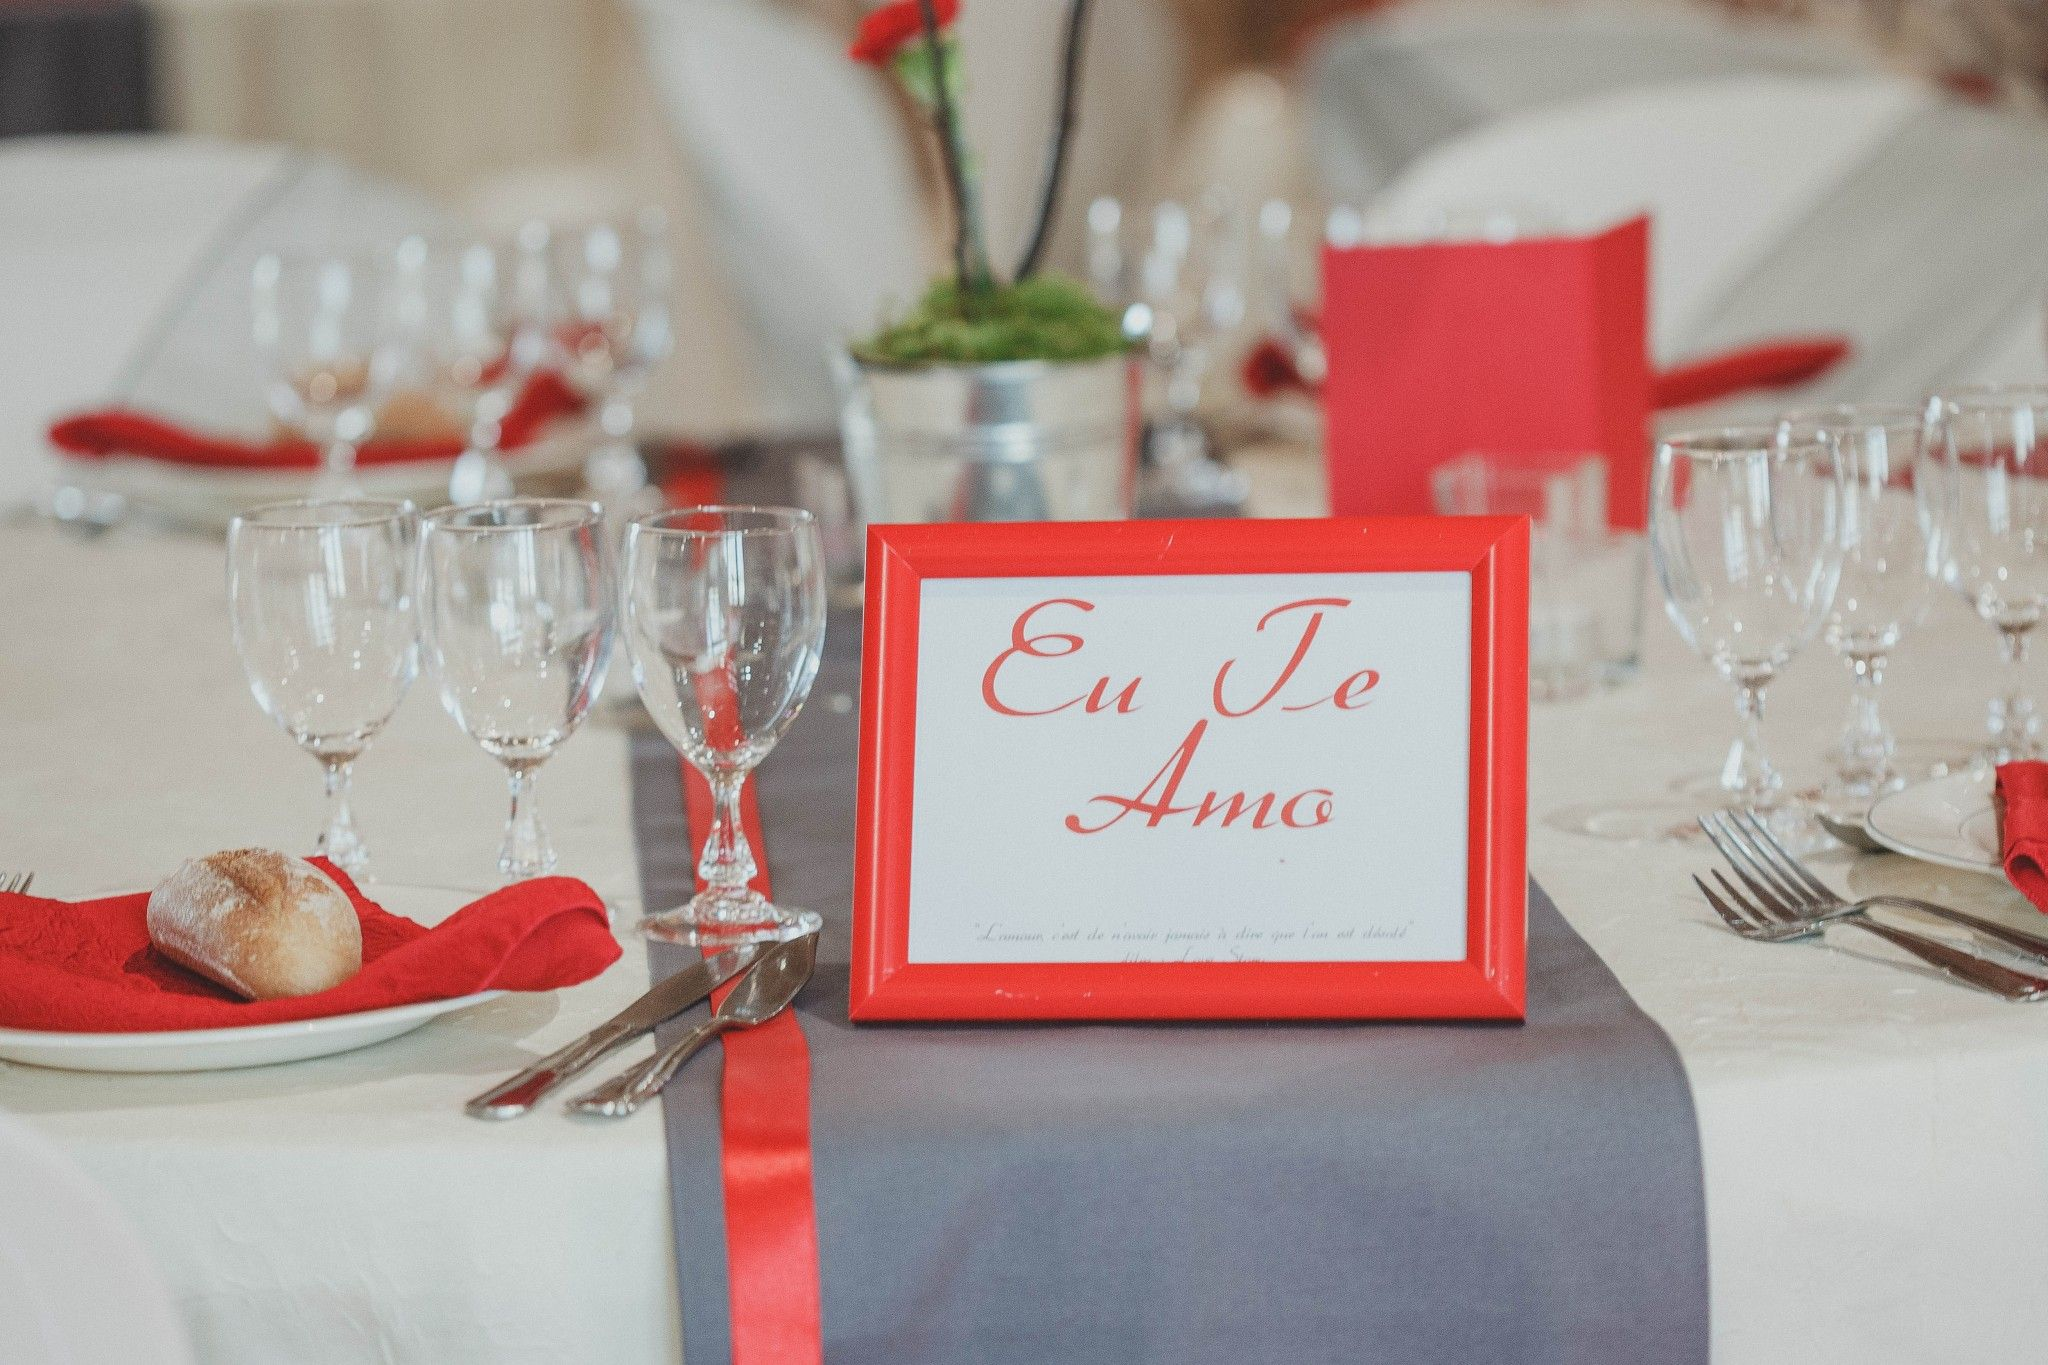 d coration mariage rouge et gris les bulles de bonheur. Black Bedroom Furniture Sets. Home Design Ideas